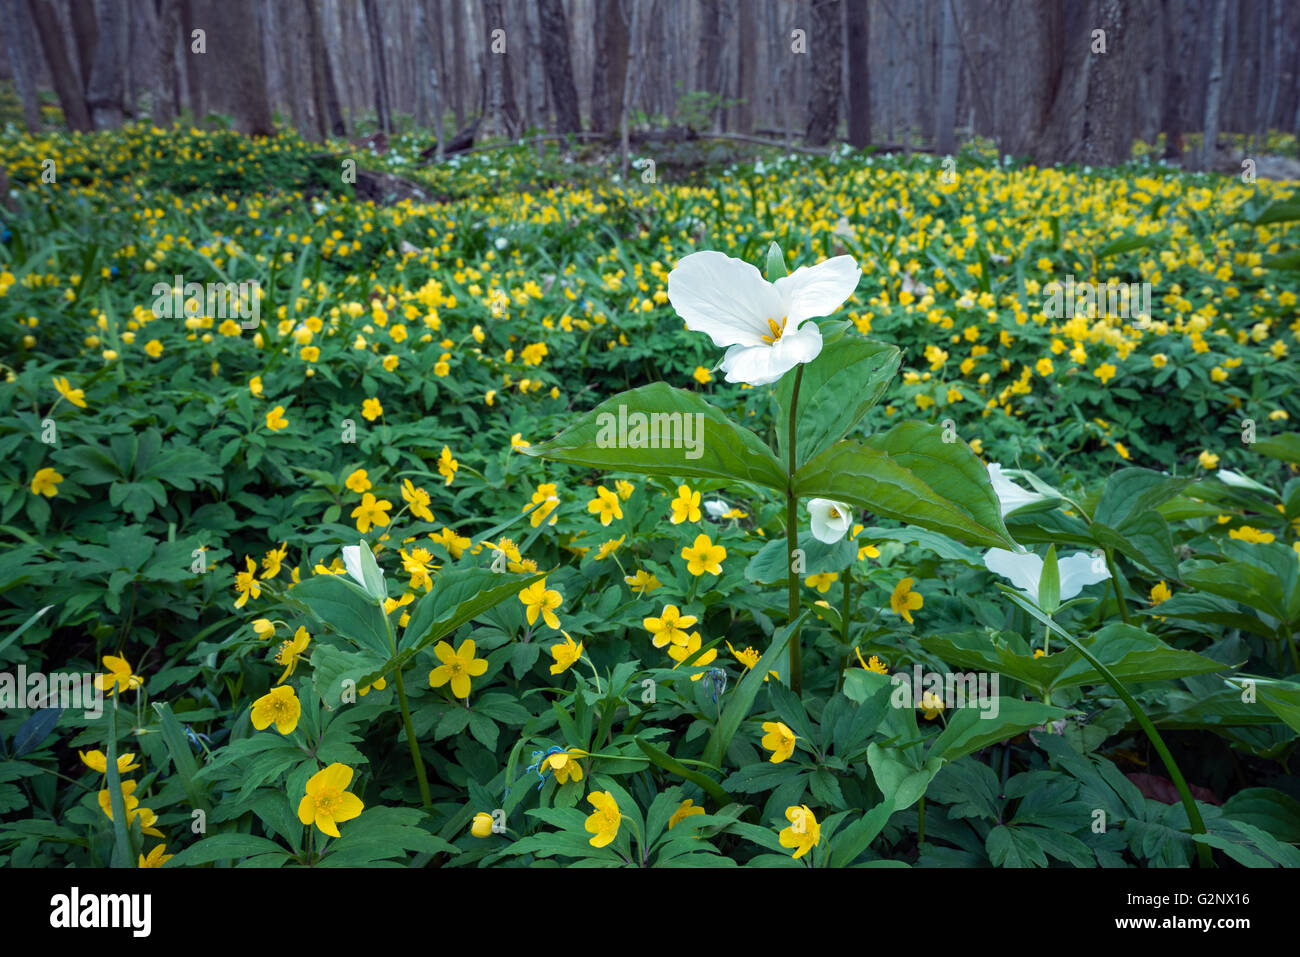 A Single Trillium Stands Out in a Carpet of Yellow Wildflowers Stock Photo